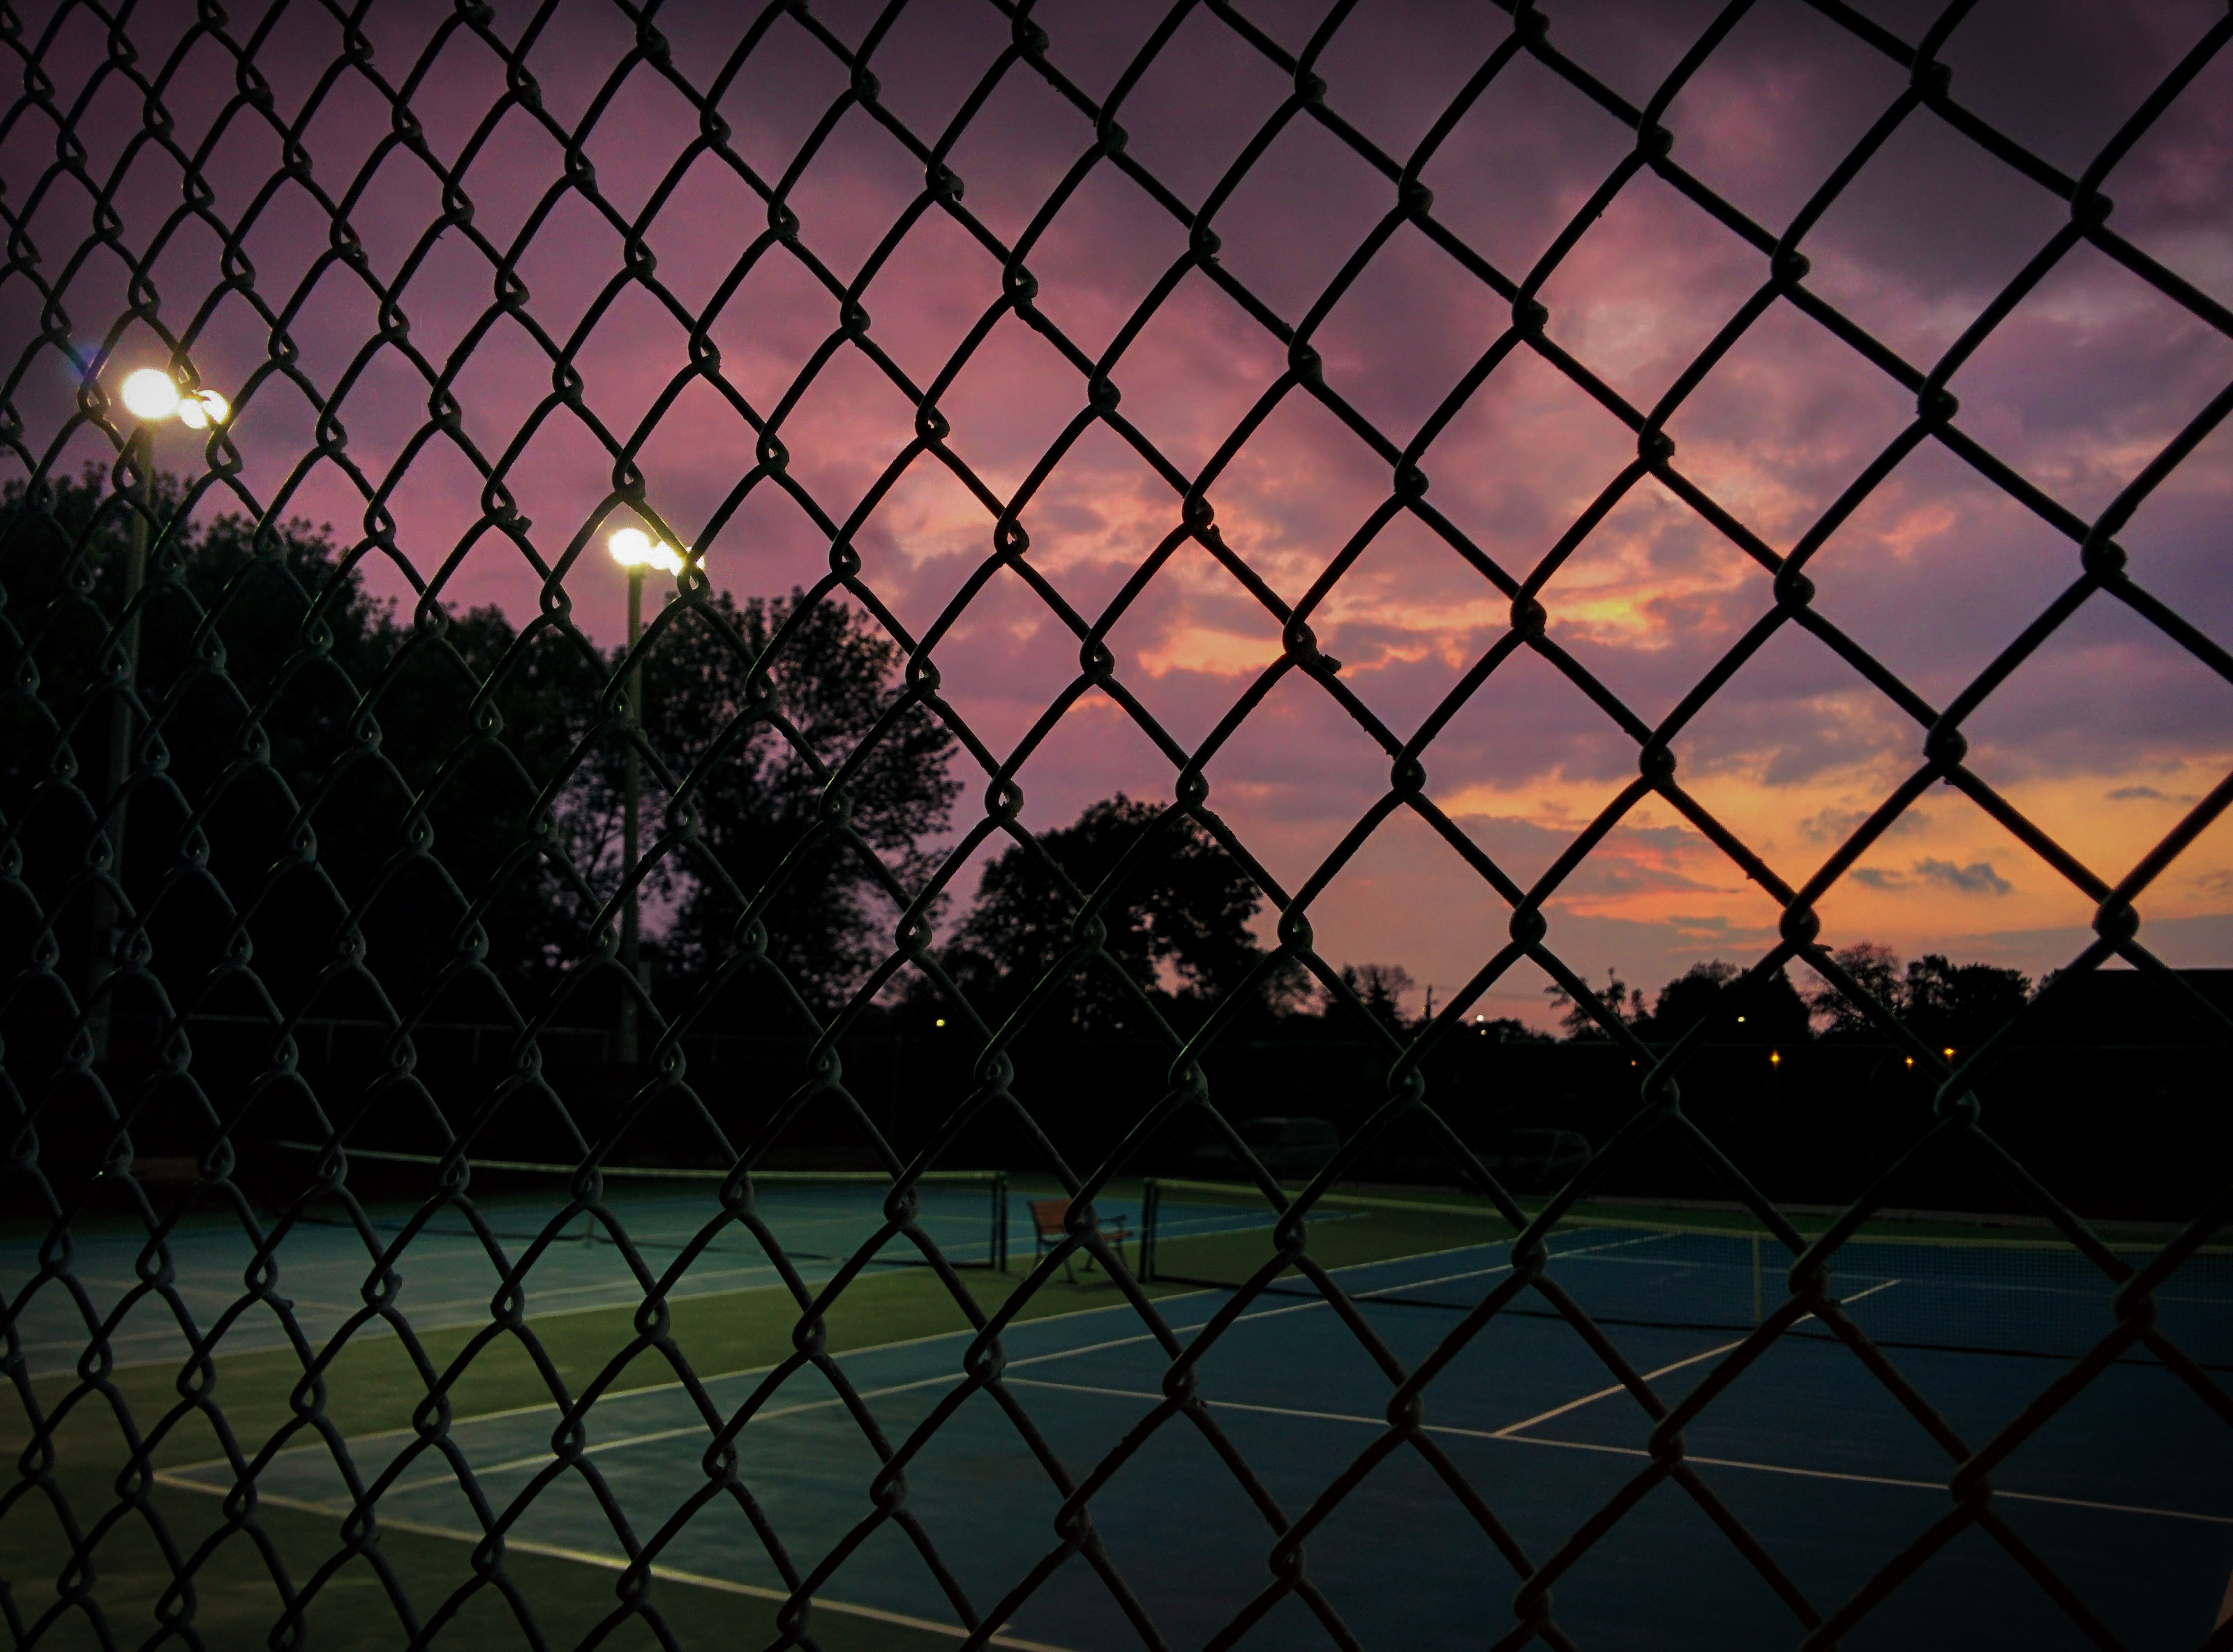 Sunsets over the tennis court